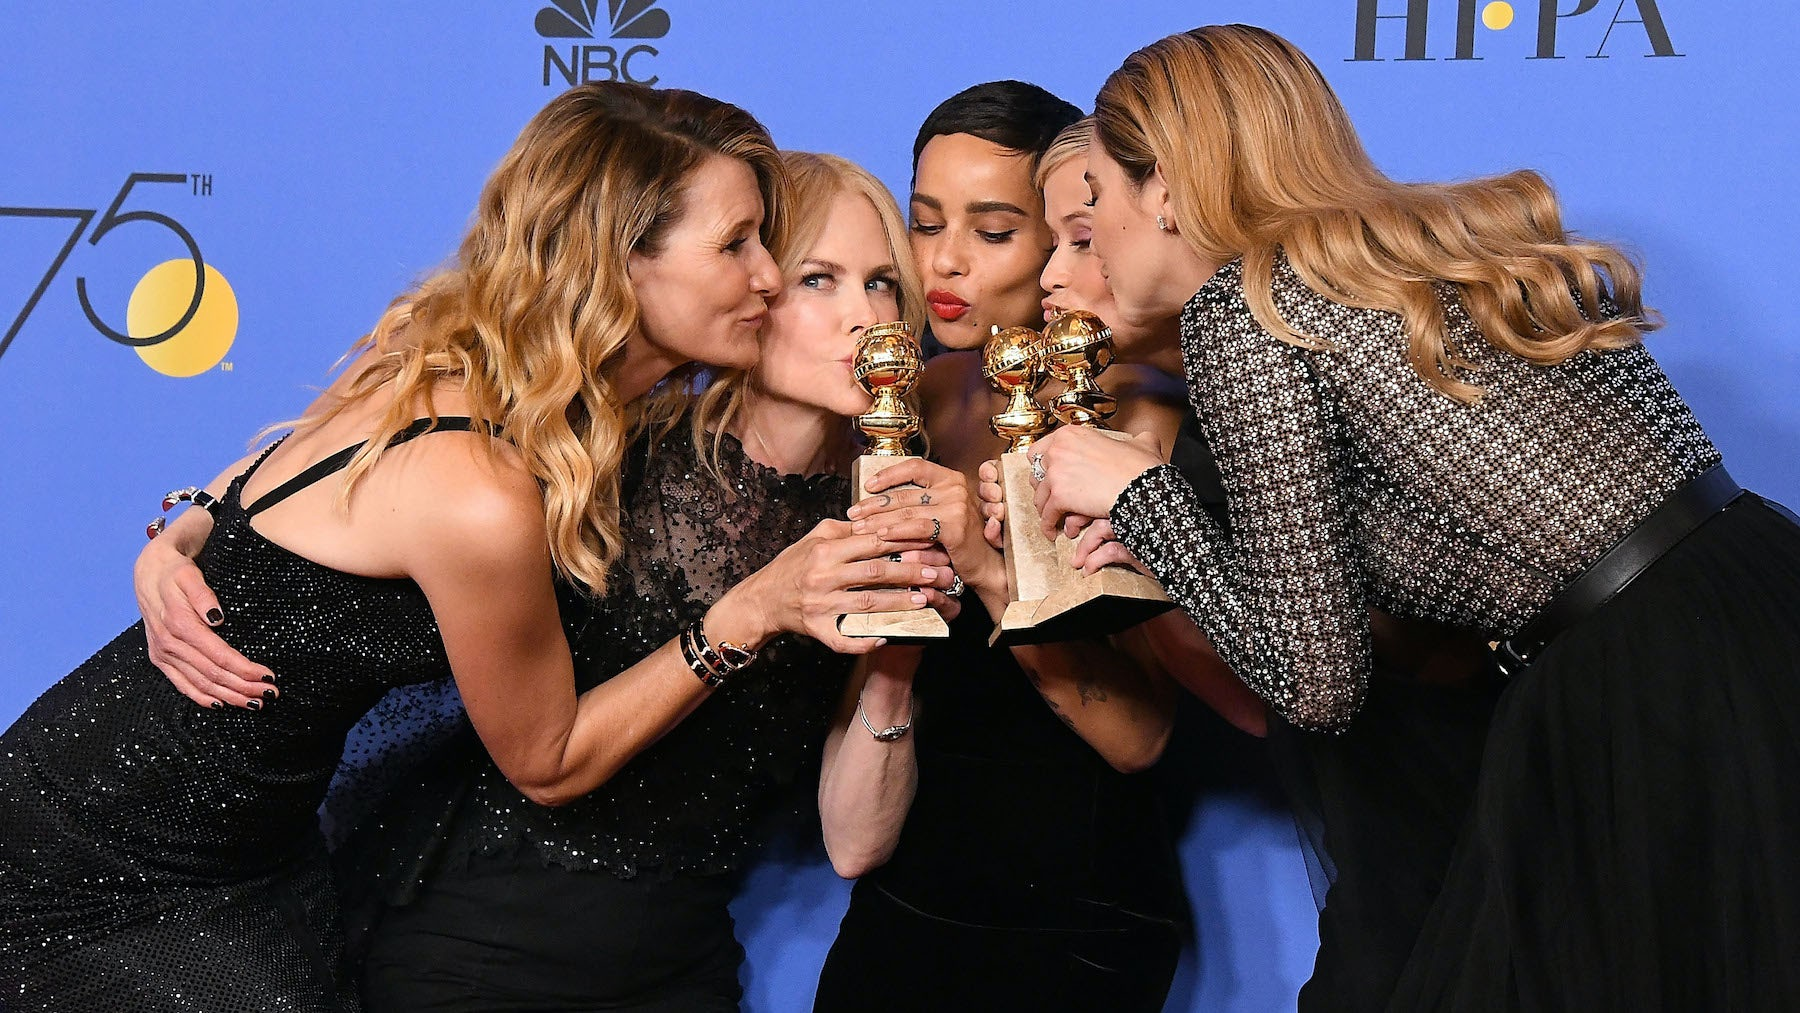 """Big Little Lies"" stars Laura Dern, Nicole Kidman, Zöe Kravitz, Reese Witherspoon and Shailene Woodley pose on the Golden Globes' red carpet 